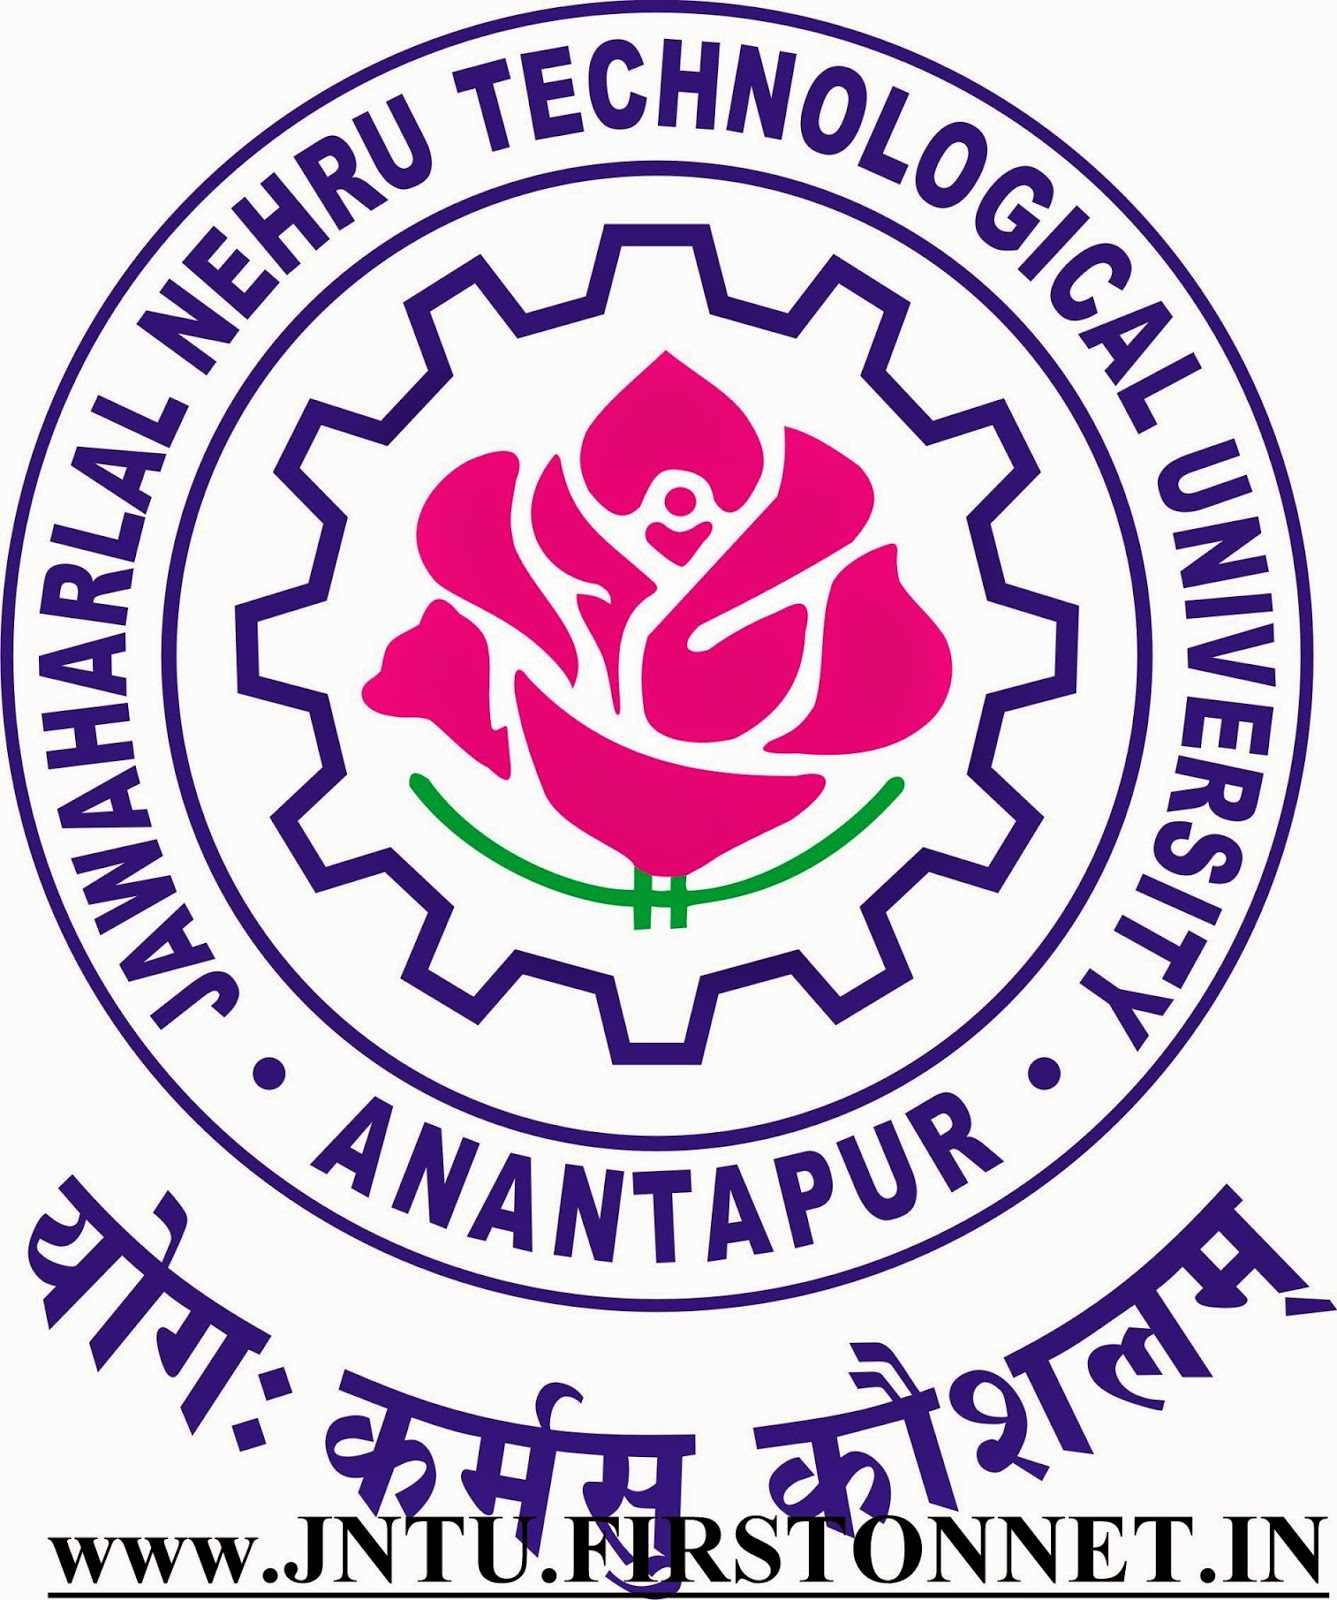 Jntu Anantapur CSE question Papers